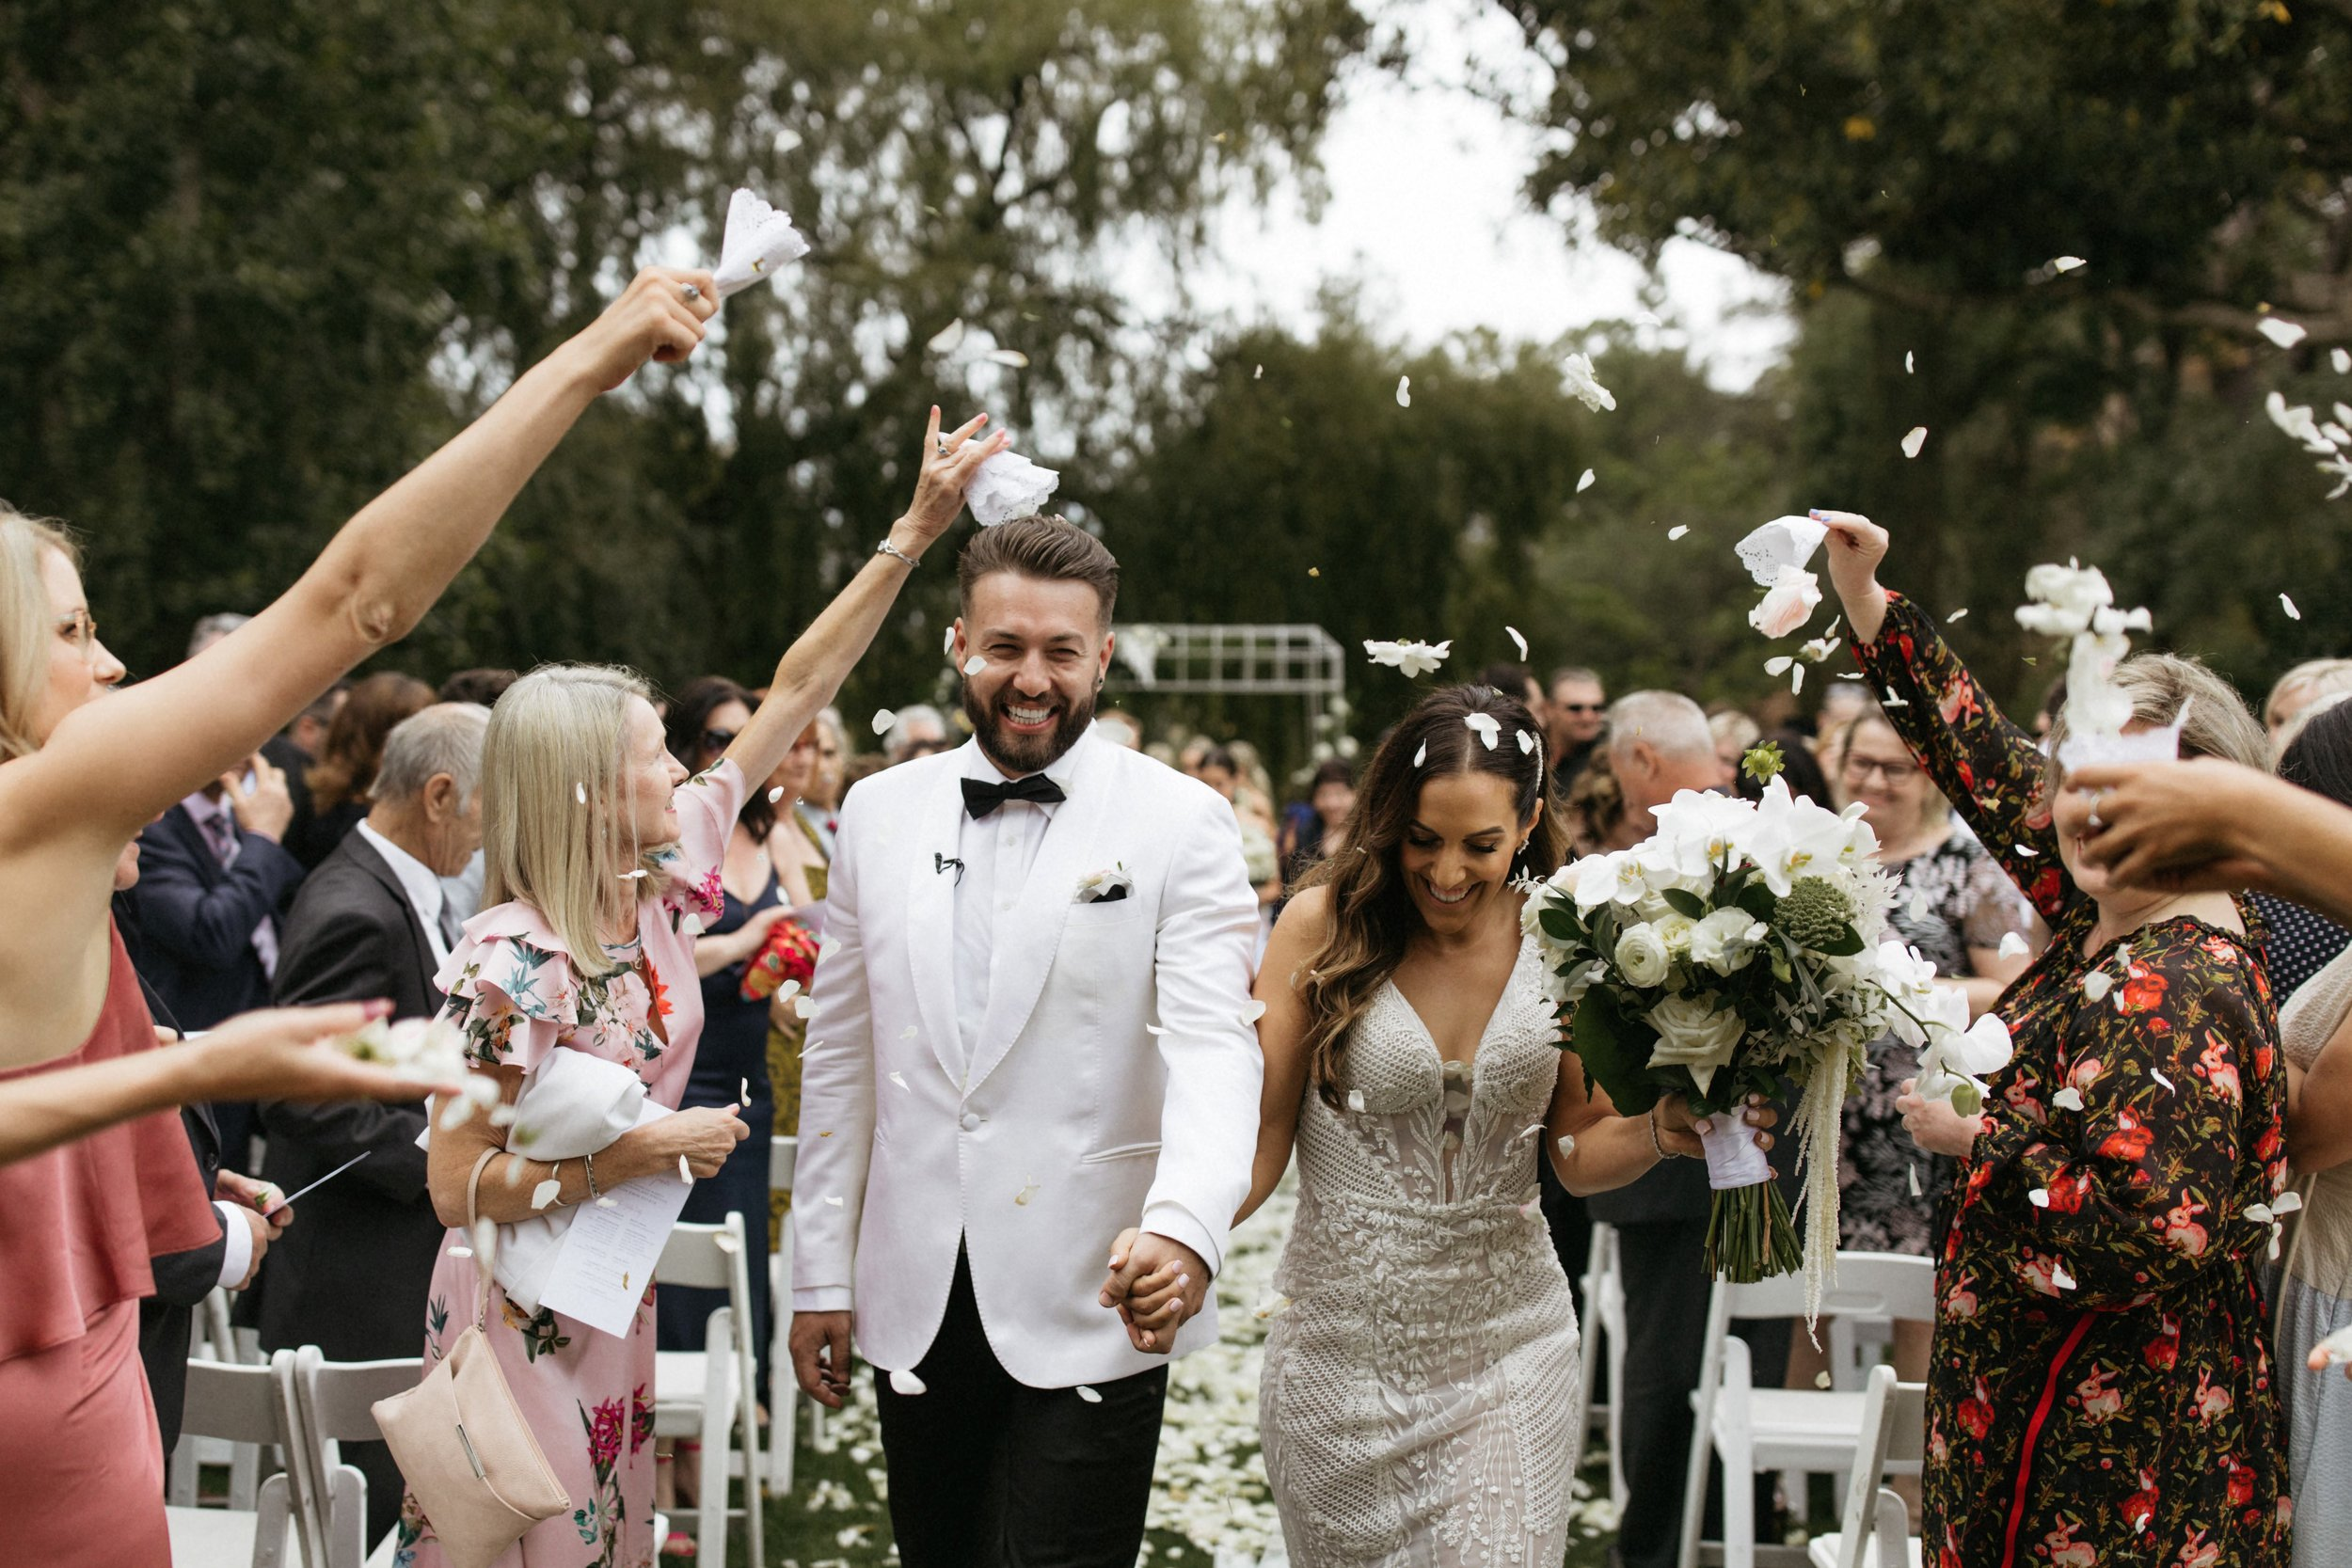 The Stylist's Guide wedding - Maree Stoubos & James Hopgood